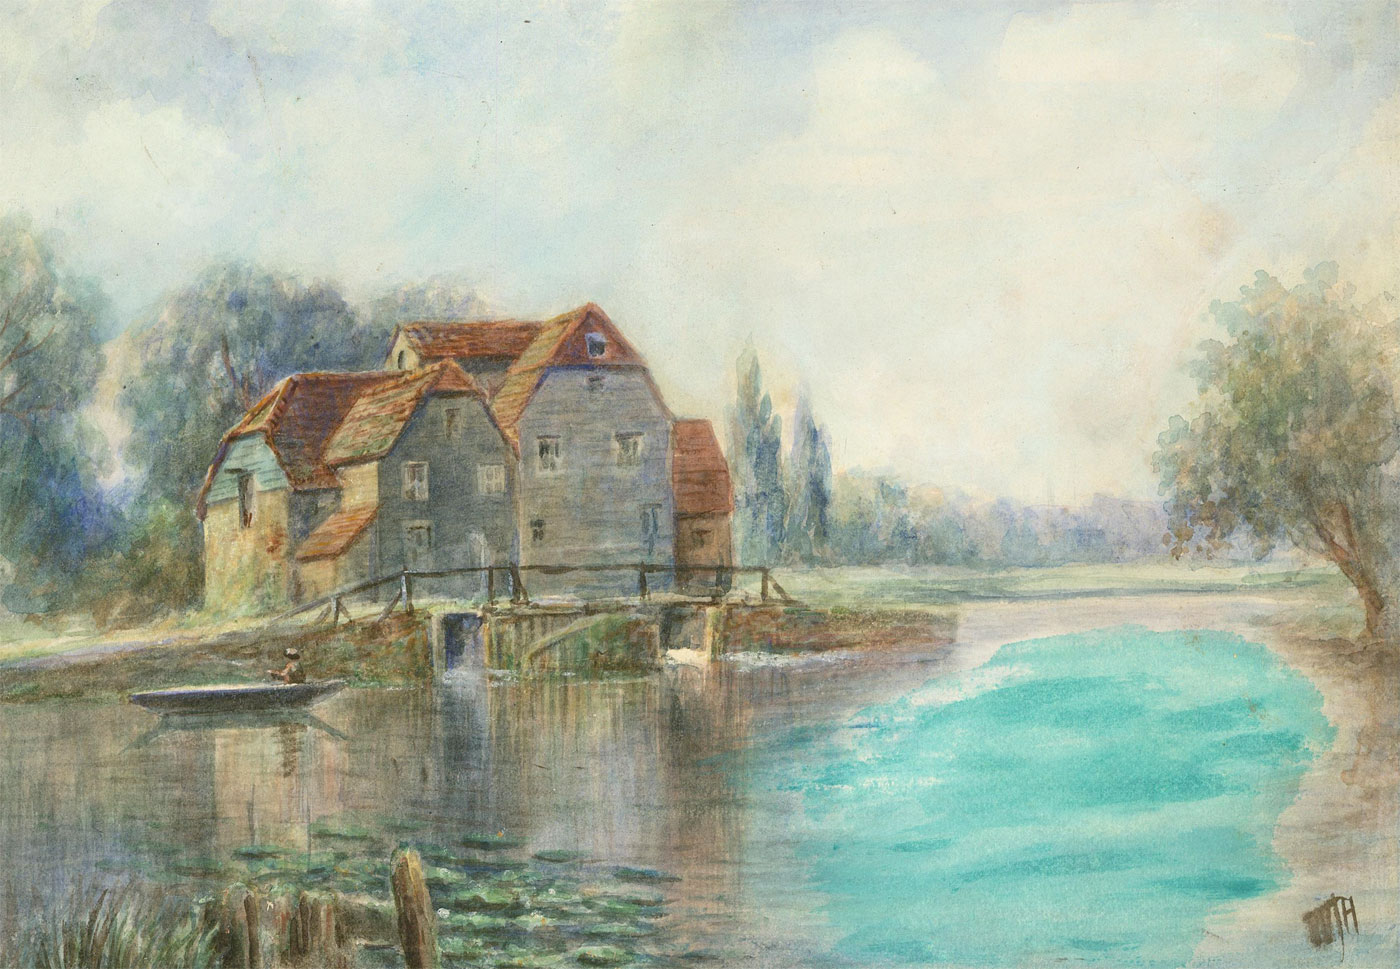 W. T. H. - Signed Early 20th Century Watercolour, the Cottage on the River